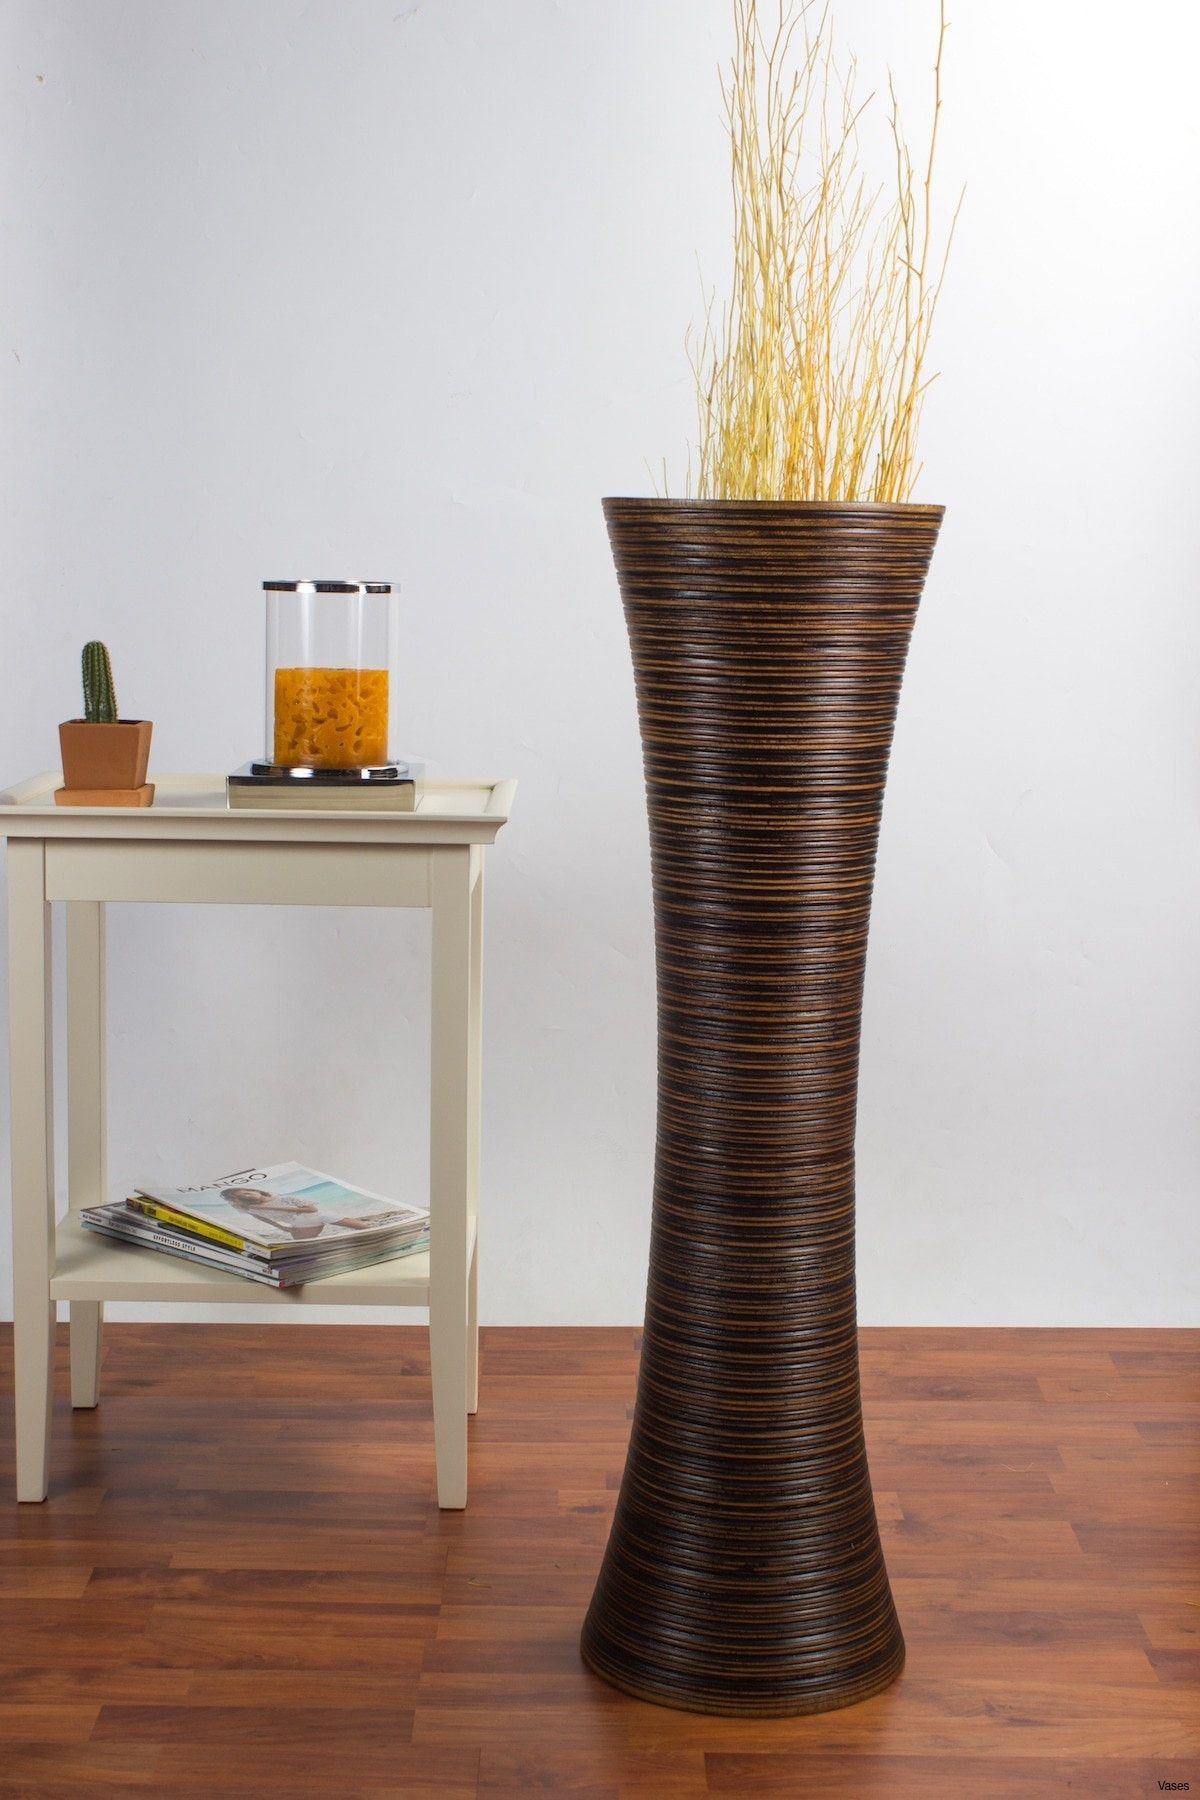 large floor vases for sale of 30 large floor vase the weekly world pertaining to decorative floor vases fresh d dkbrw 5749 1h vases tall brown i 0d